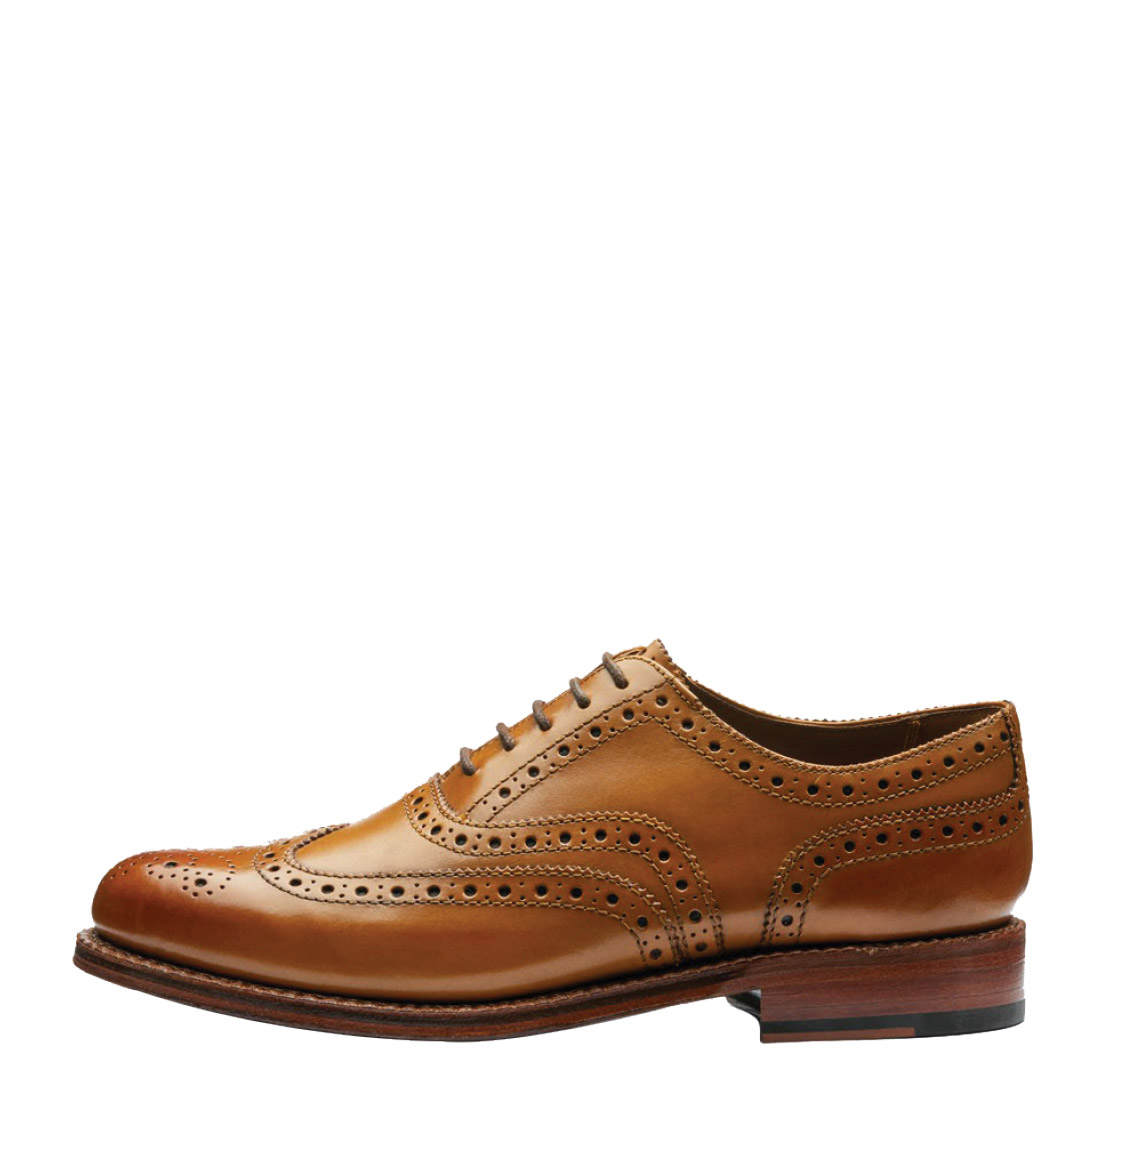 Grenson Stanley Tan Oxford Brogue Leather Shoes